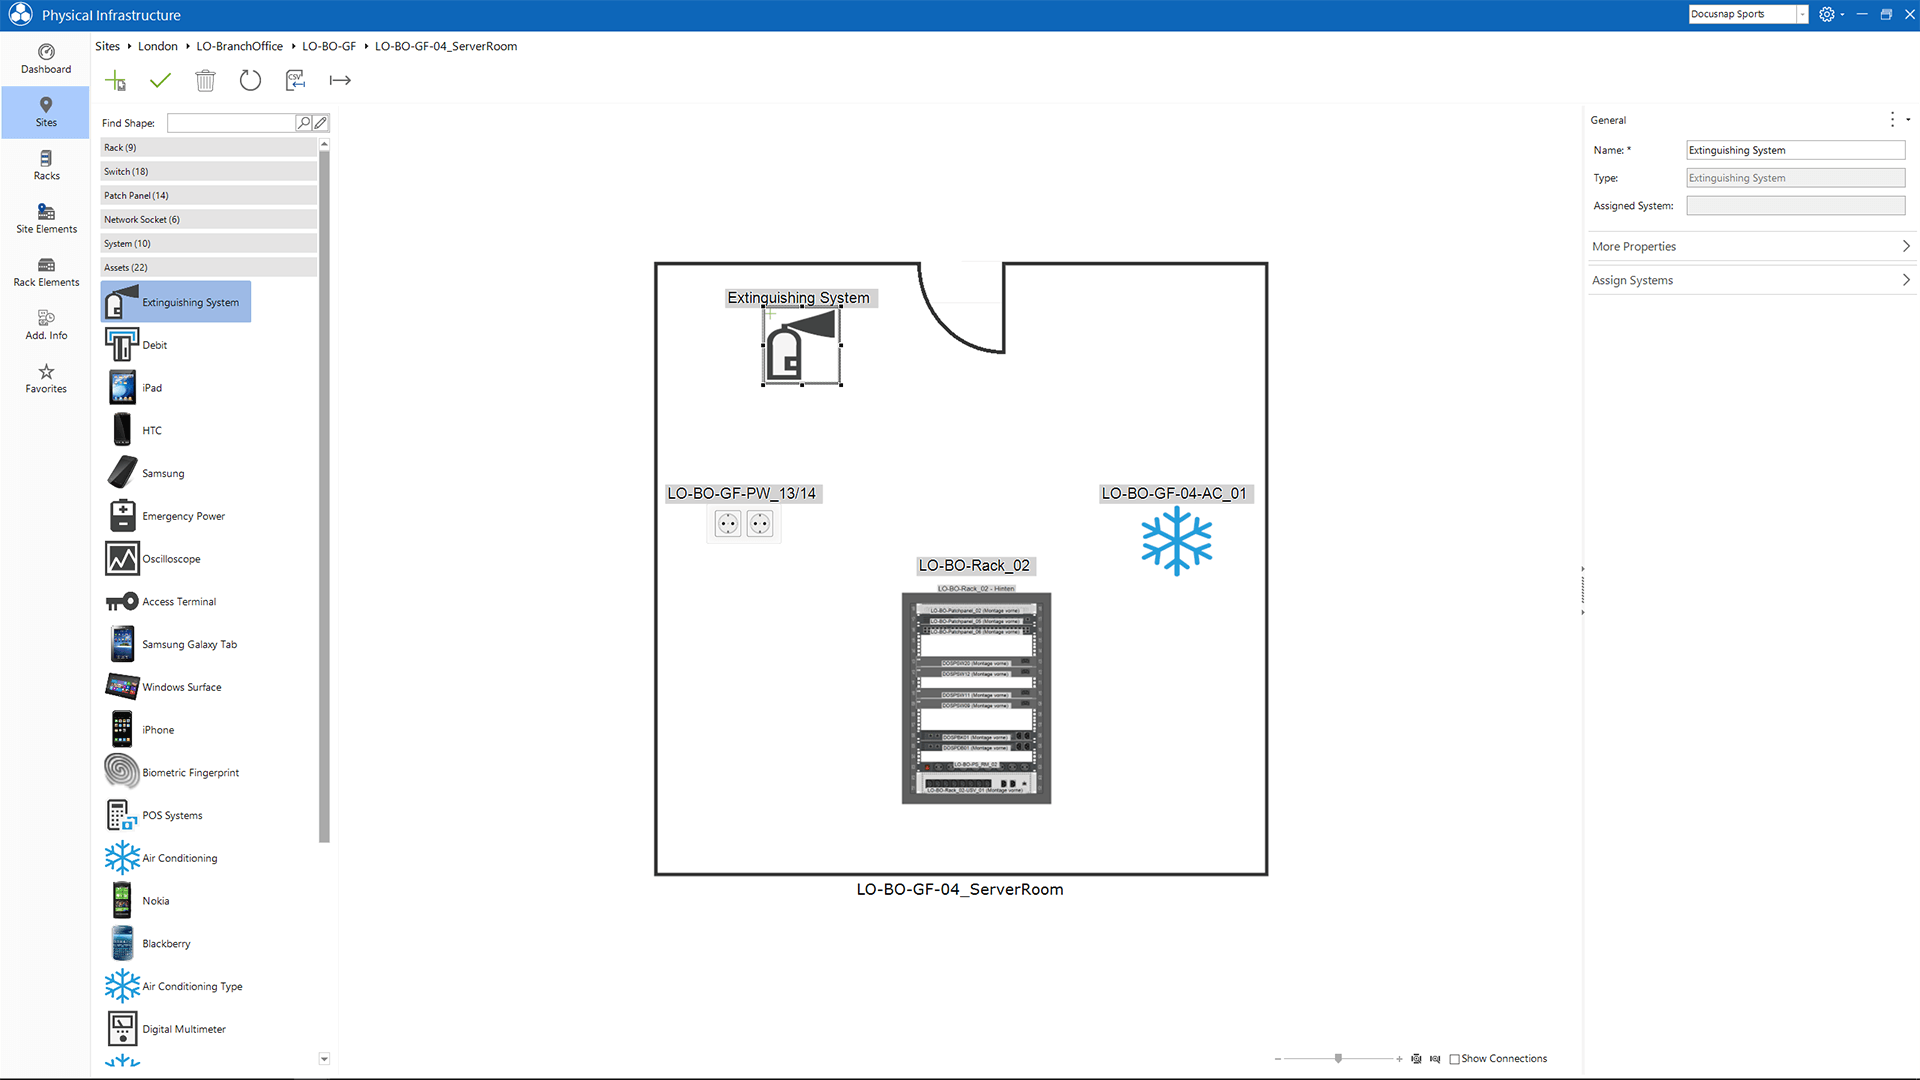 Screenshot: Manually Captured Patch Panel and in IT Documentation Integrated